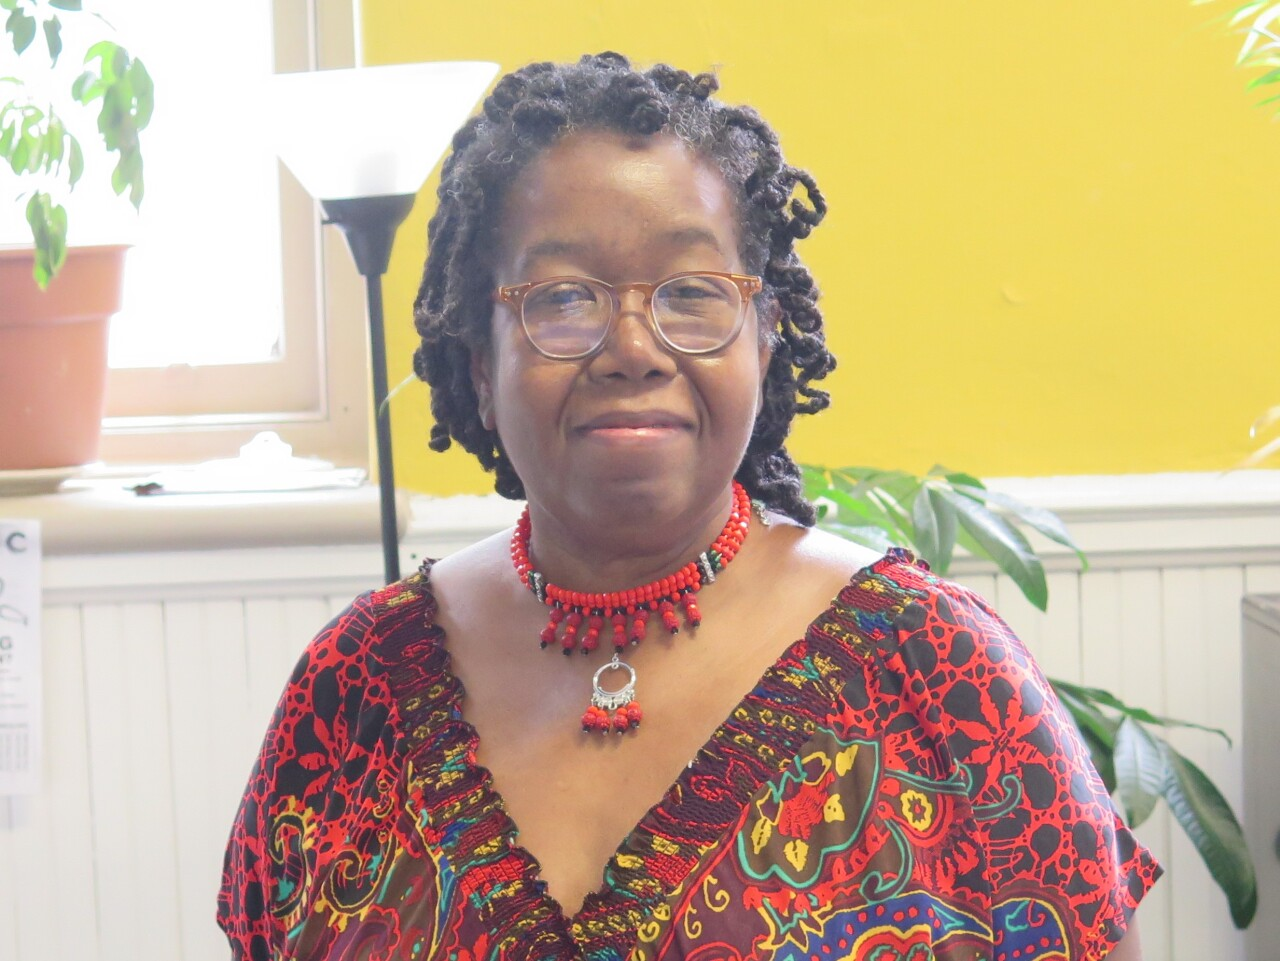 This portrait of Cynthia Ford was taken in June of 2020. Ford is wearing glasses, a red necklace and a red printed top.